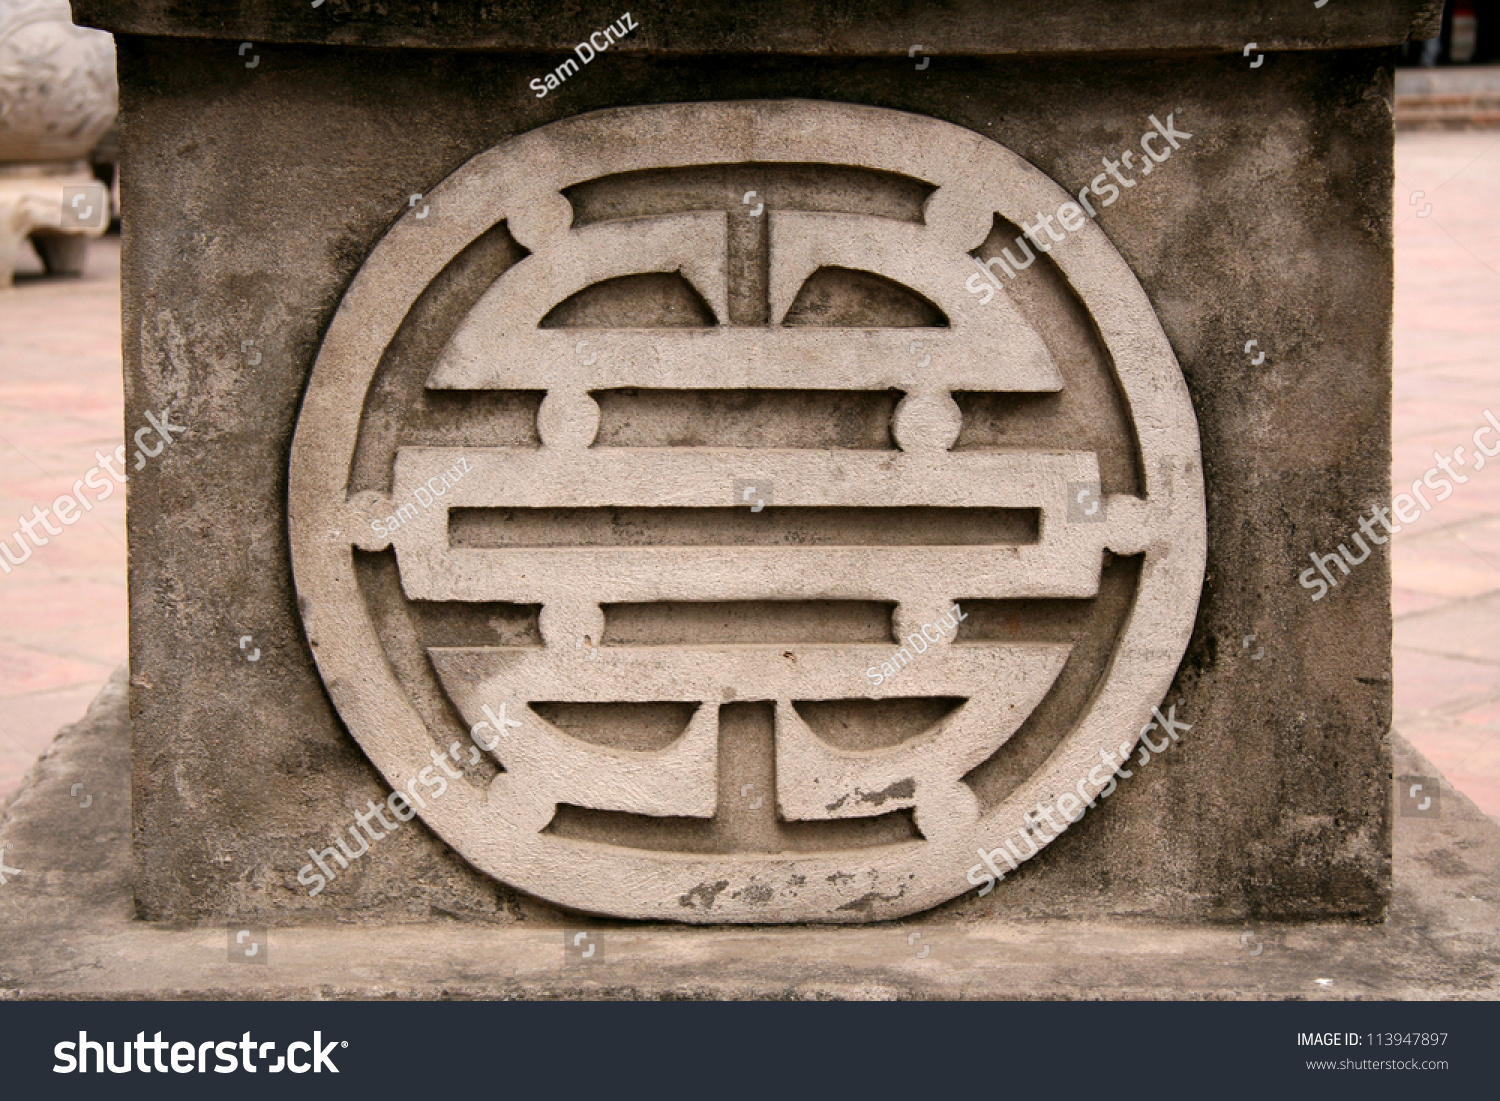 stone symbol temple literature quoc tu stock photo  stone symbol at temple of literature quoc tu giam in hanoi vietnam